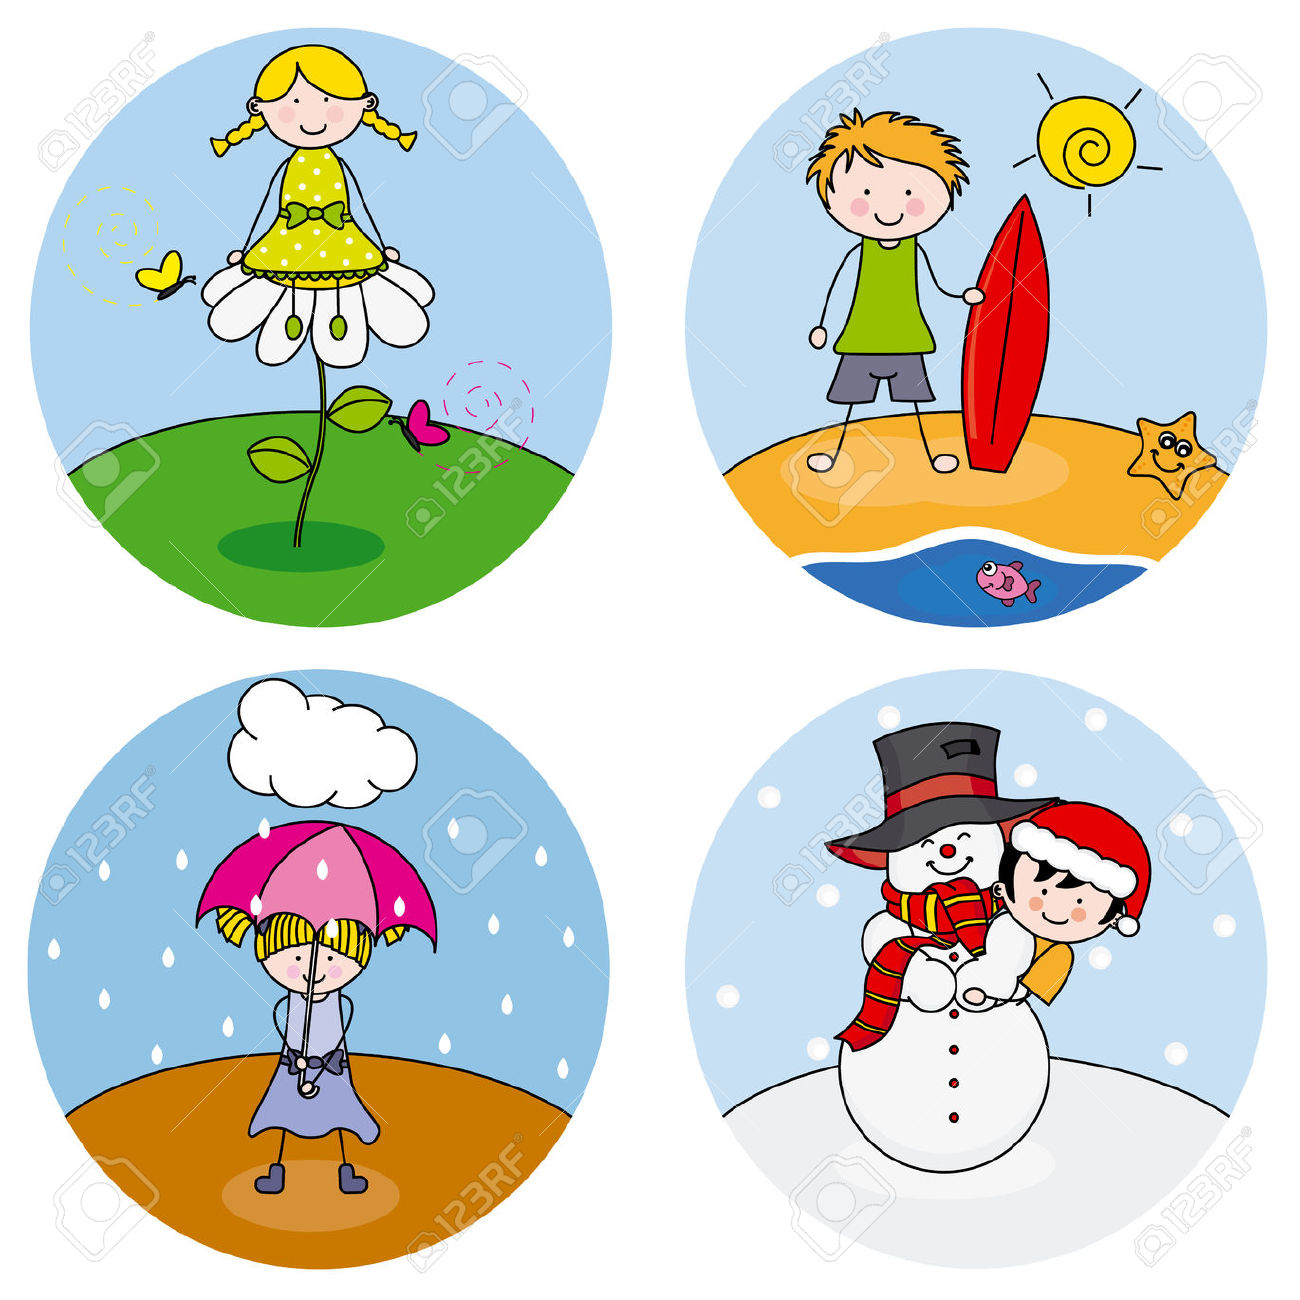 Season clipart #5, Download drawings